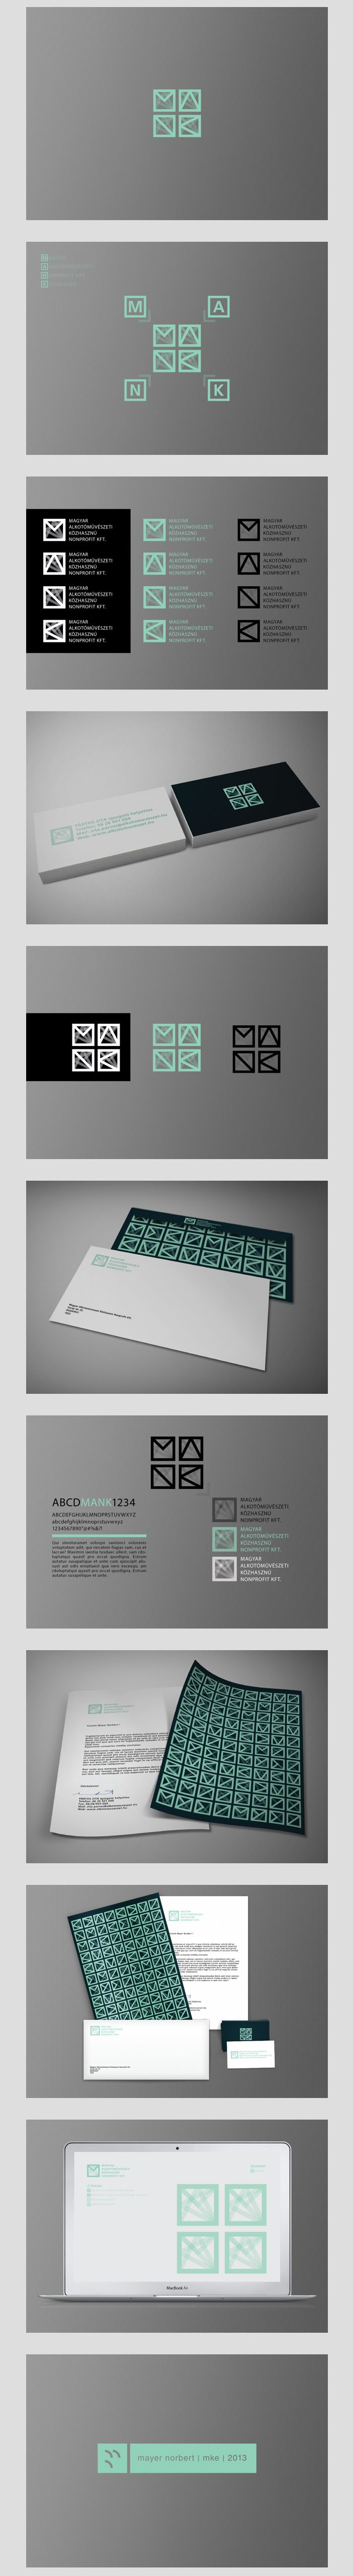 MANK Logo | #stationary #corporate #design #corporatedesign #logo #identity #branding #marketing <<< repinned by an #advertising agency from #Hamburg / #Germany - www.BlickeDeeler.de | Follow us on www.facebook.com/BlickeDeeler